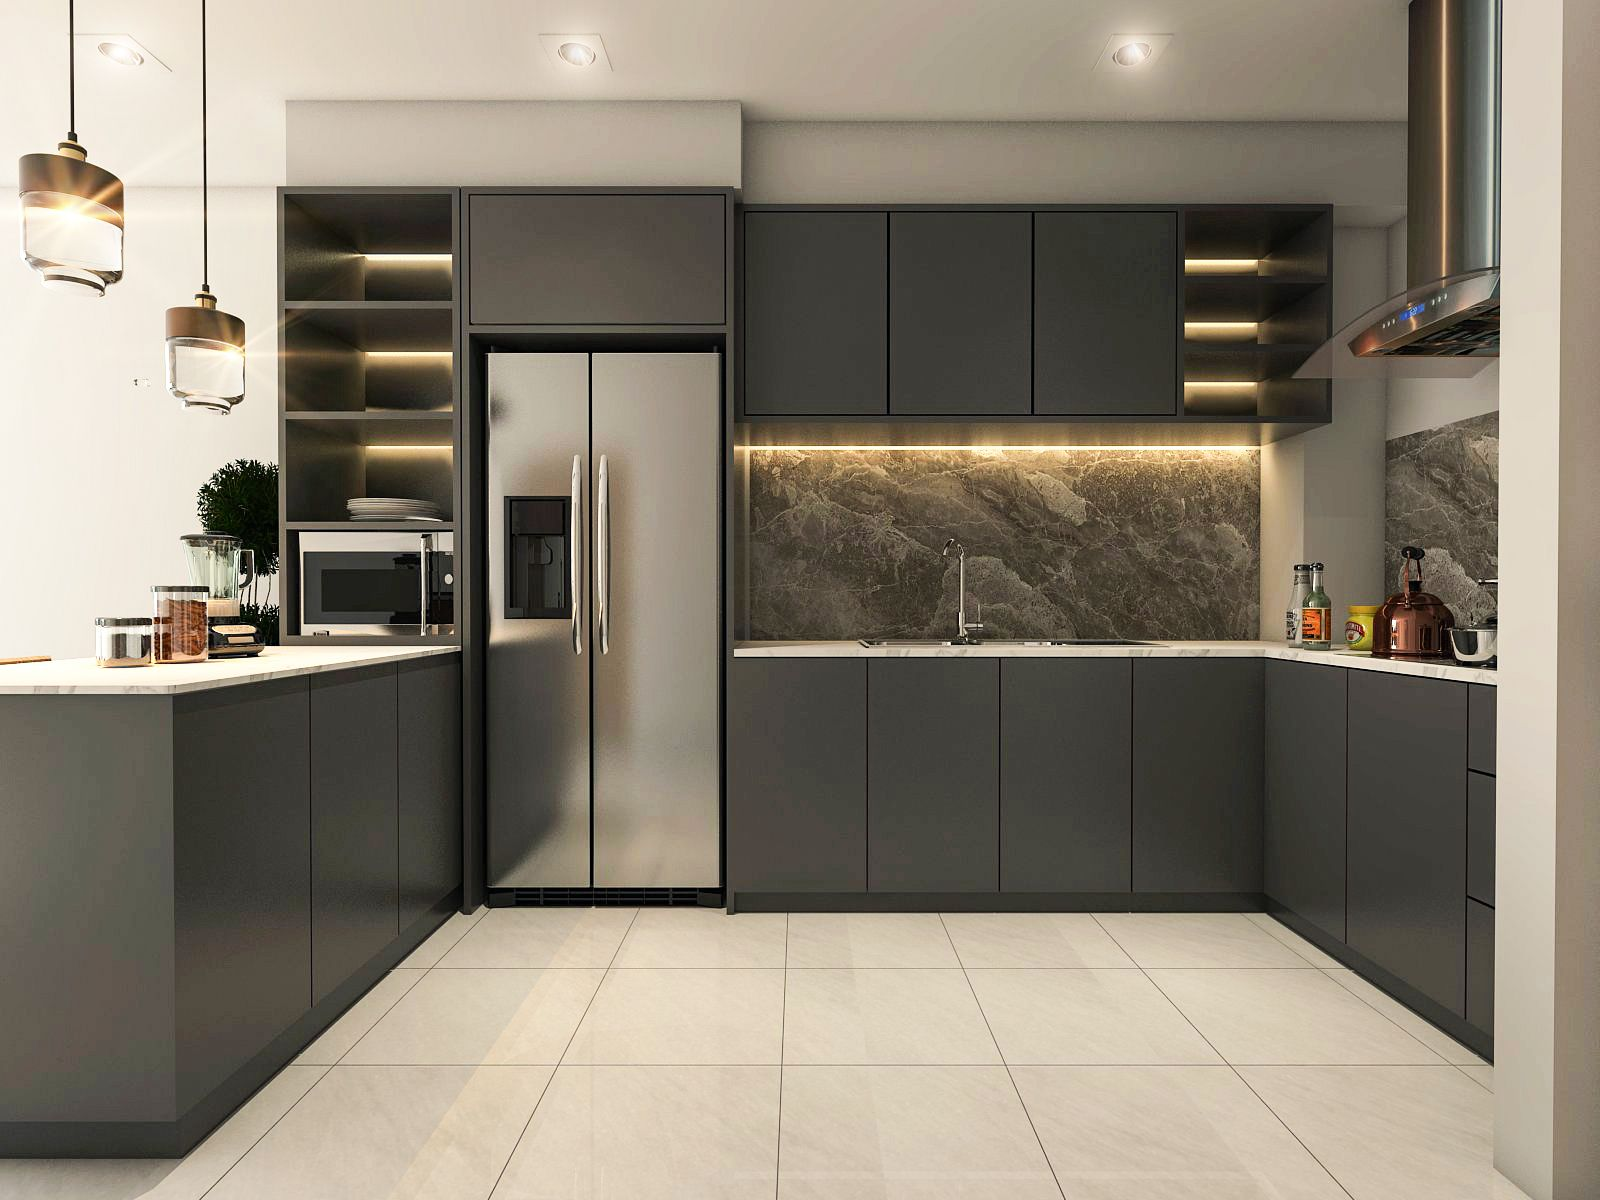 Kitchen Sketchup vray 20  Ps  Sketch up render in 2019  Kitchen Cabinets Interior